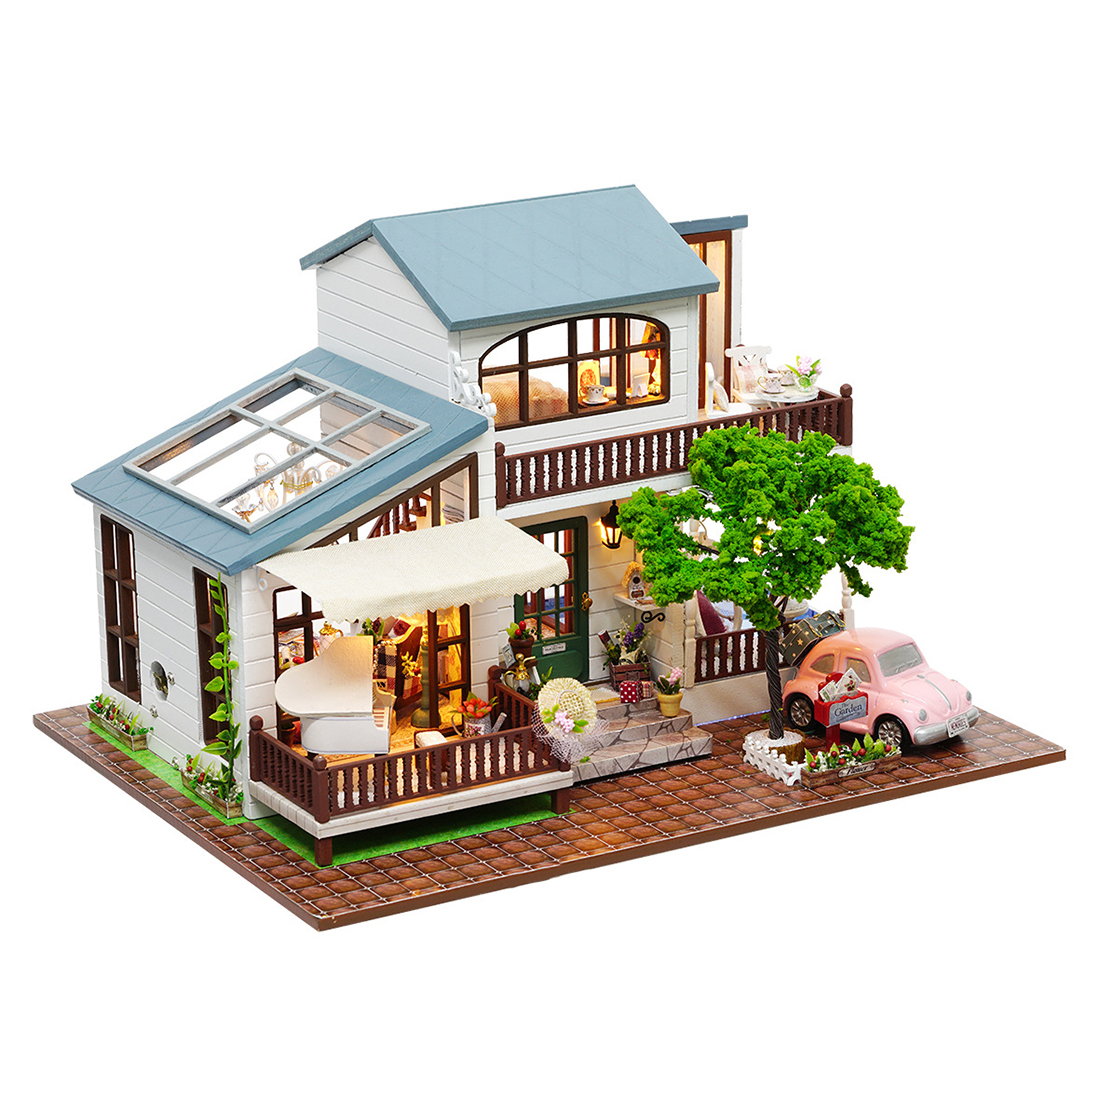 Surwish Interesting Dollhouse London Holiday Basic Version 3D Assembly DIY Household Creative House Kit короткая куртка hpjp121d 15 basic house